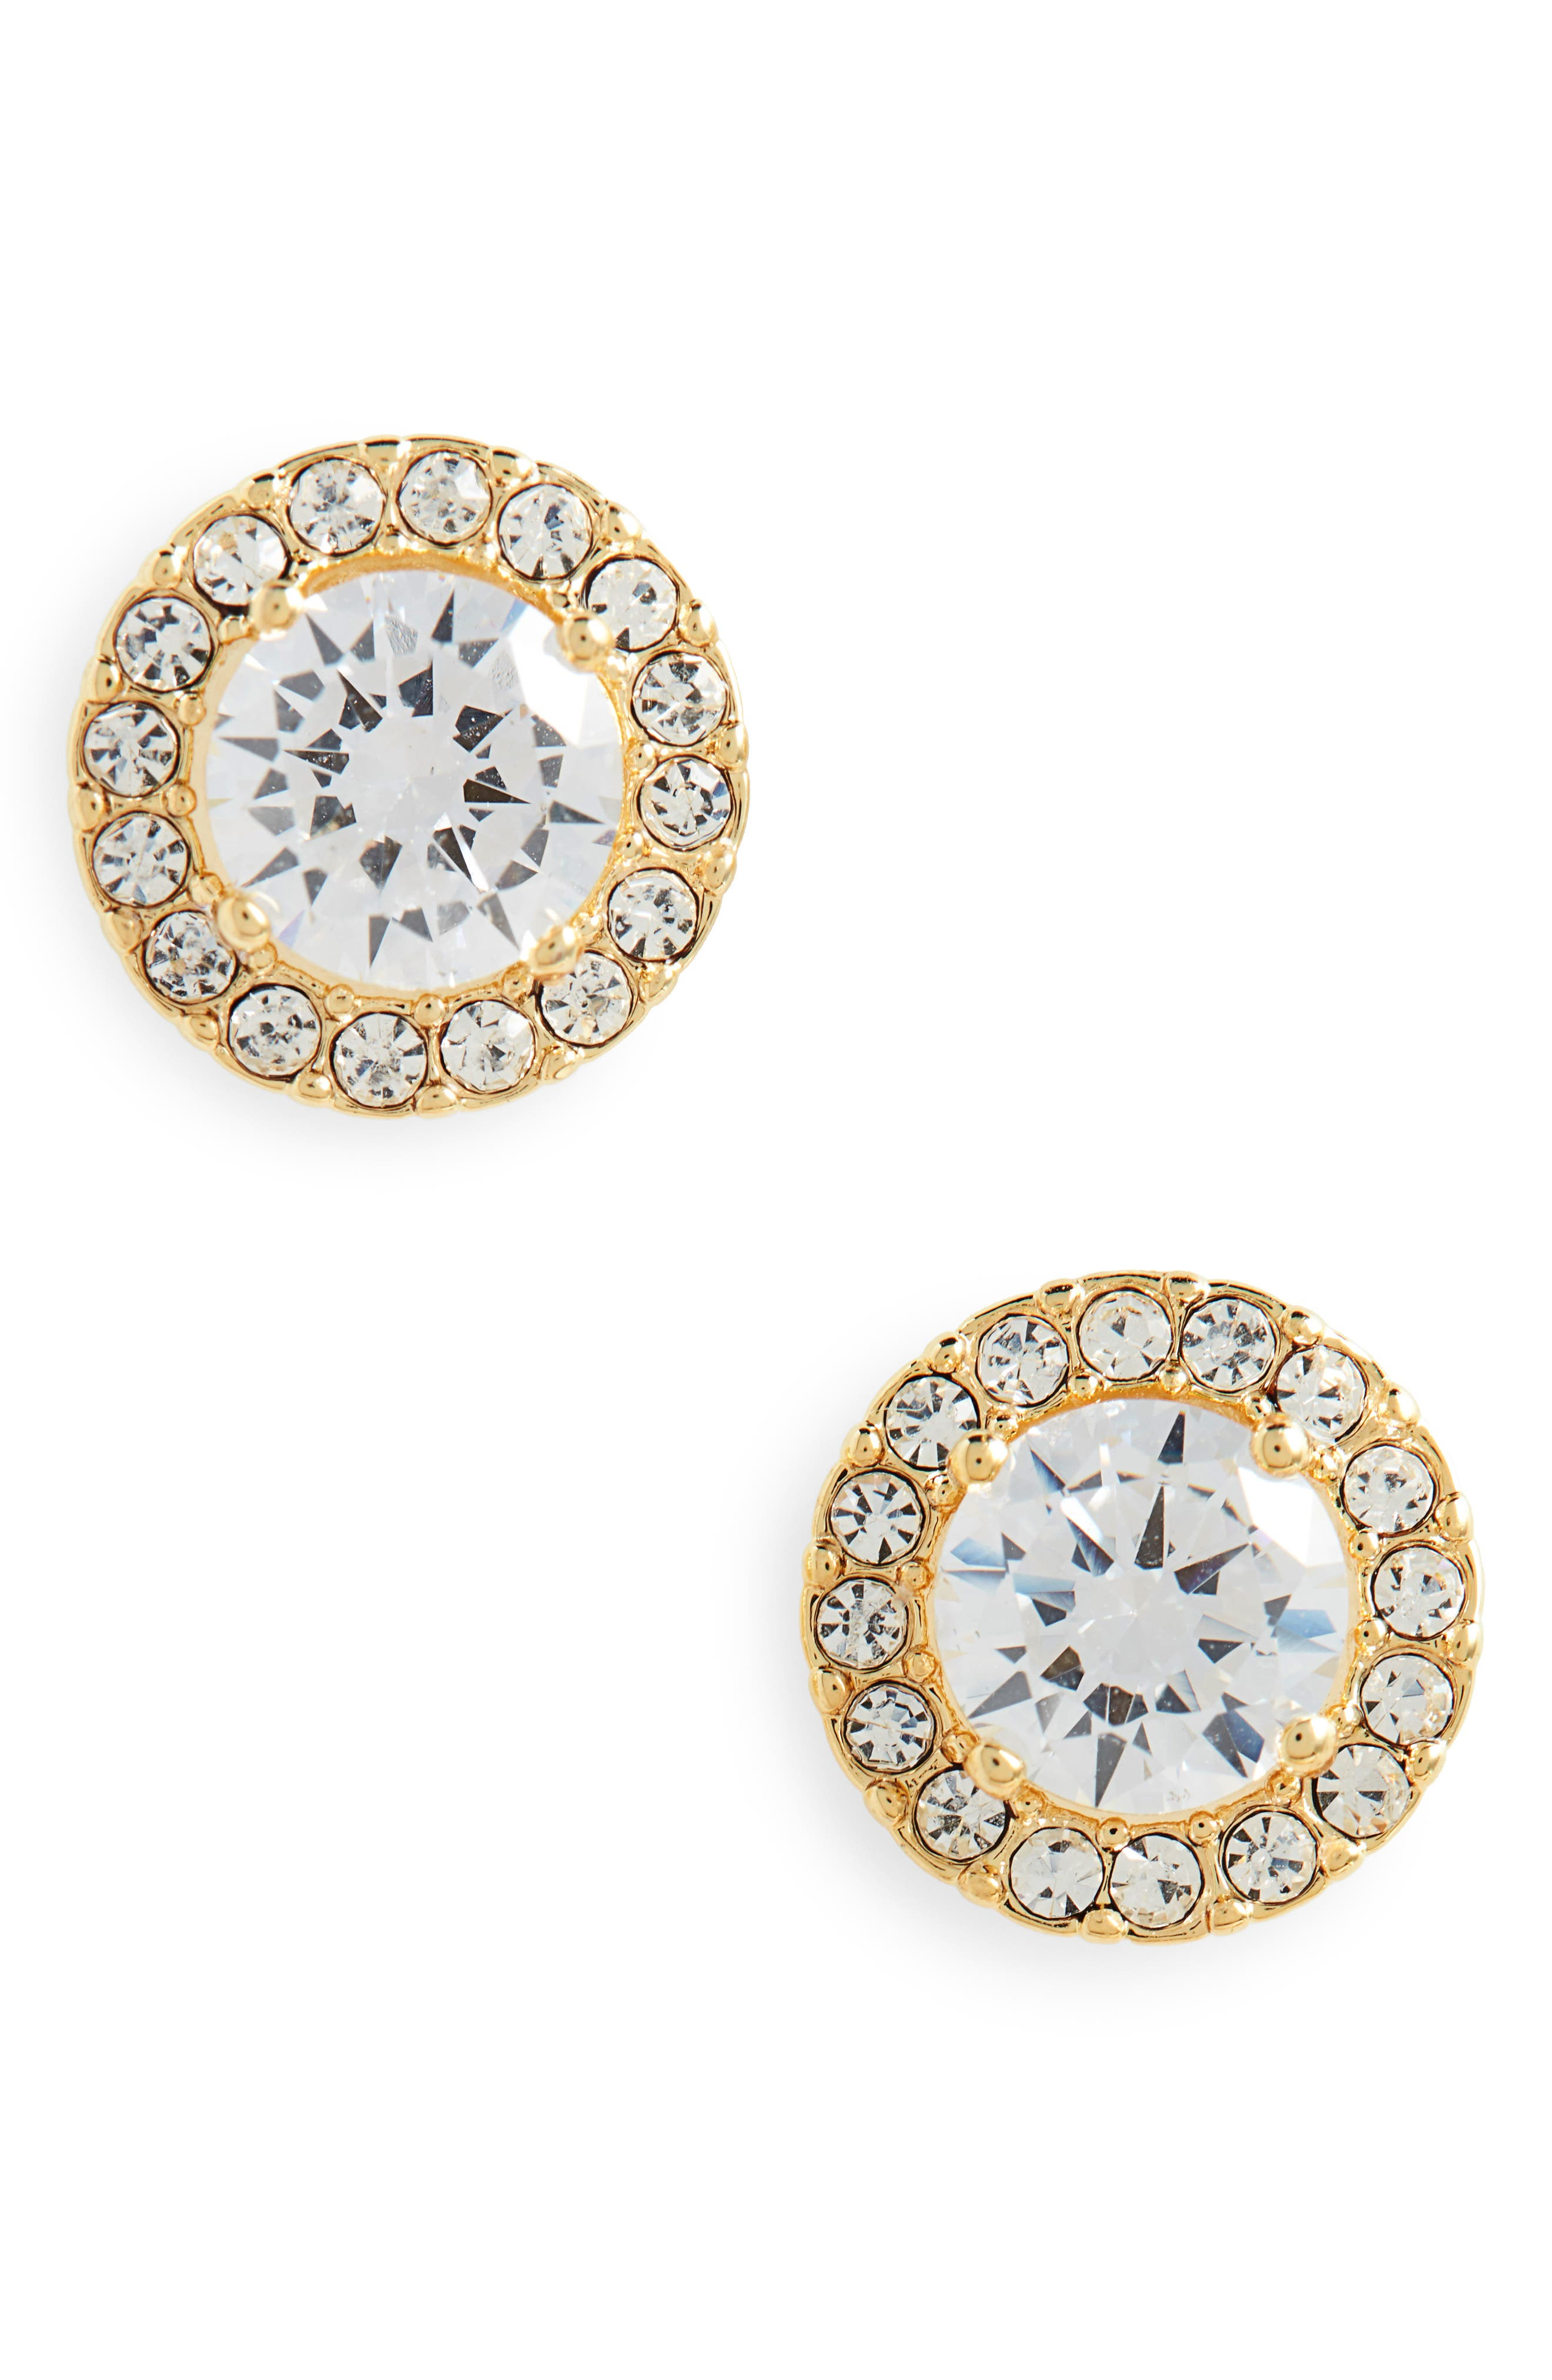 Halo Cubic Zirconia Stud Earrings,                         Main,                         color, CLEAR- GOLD